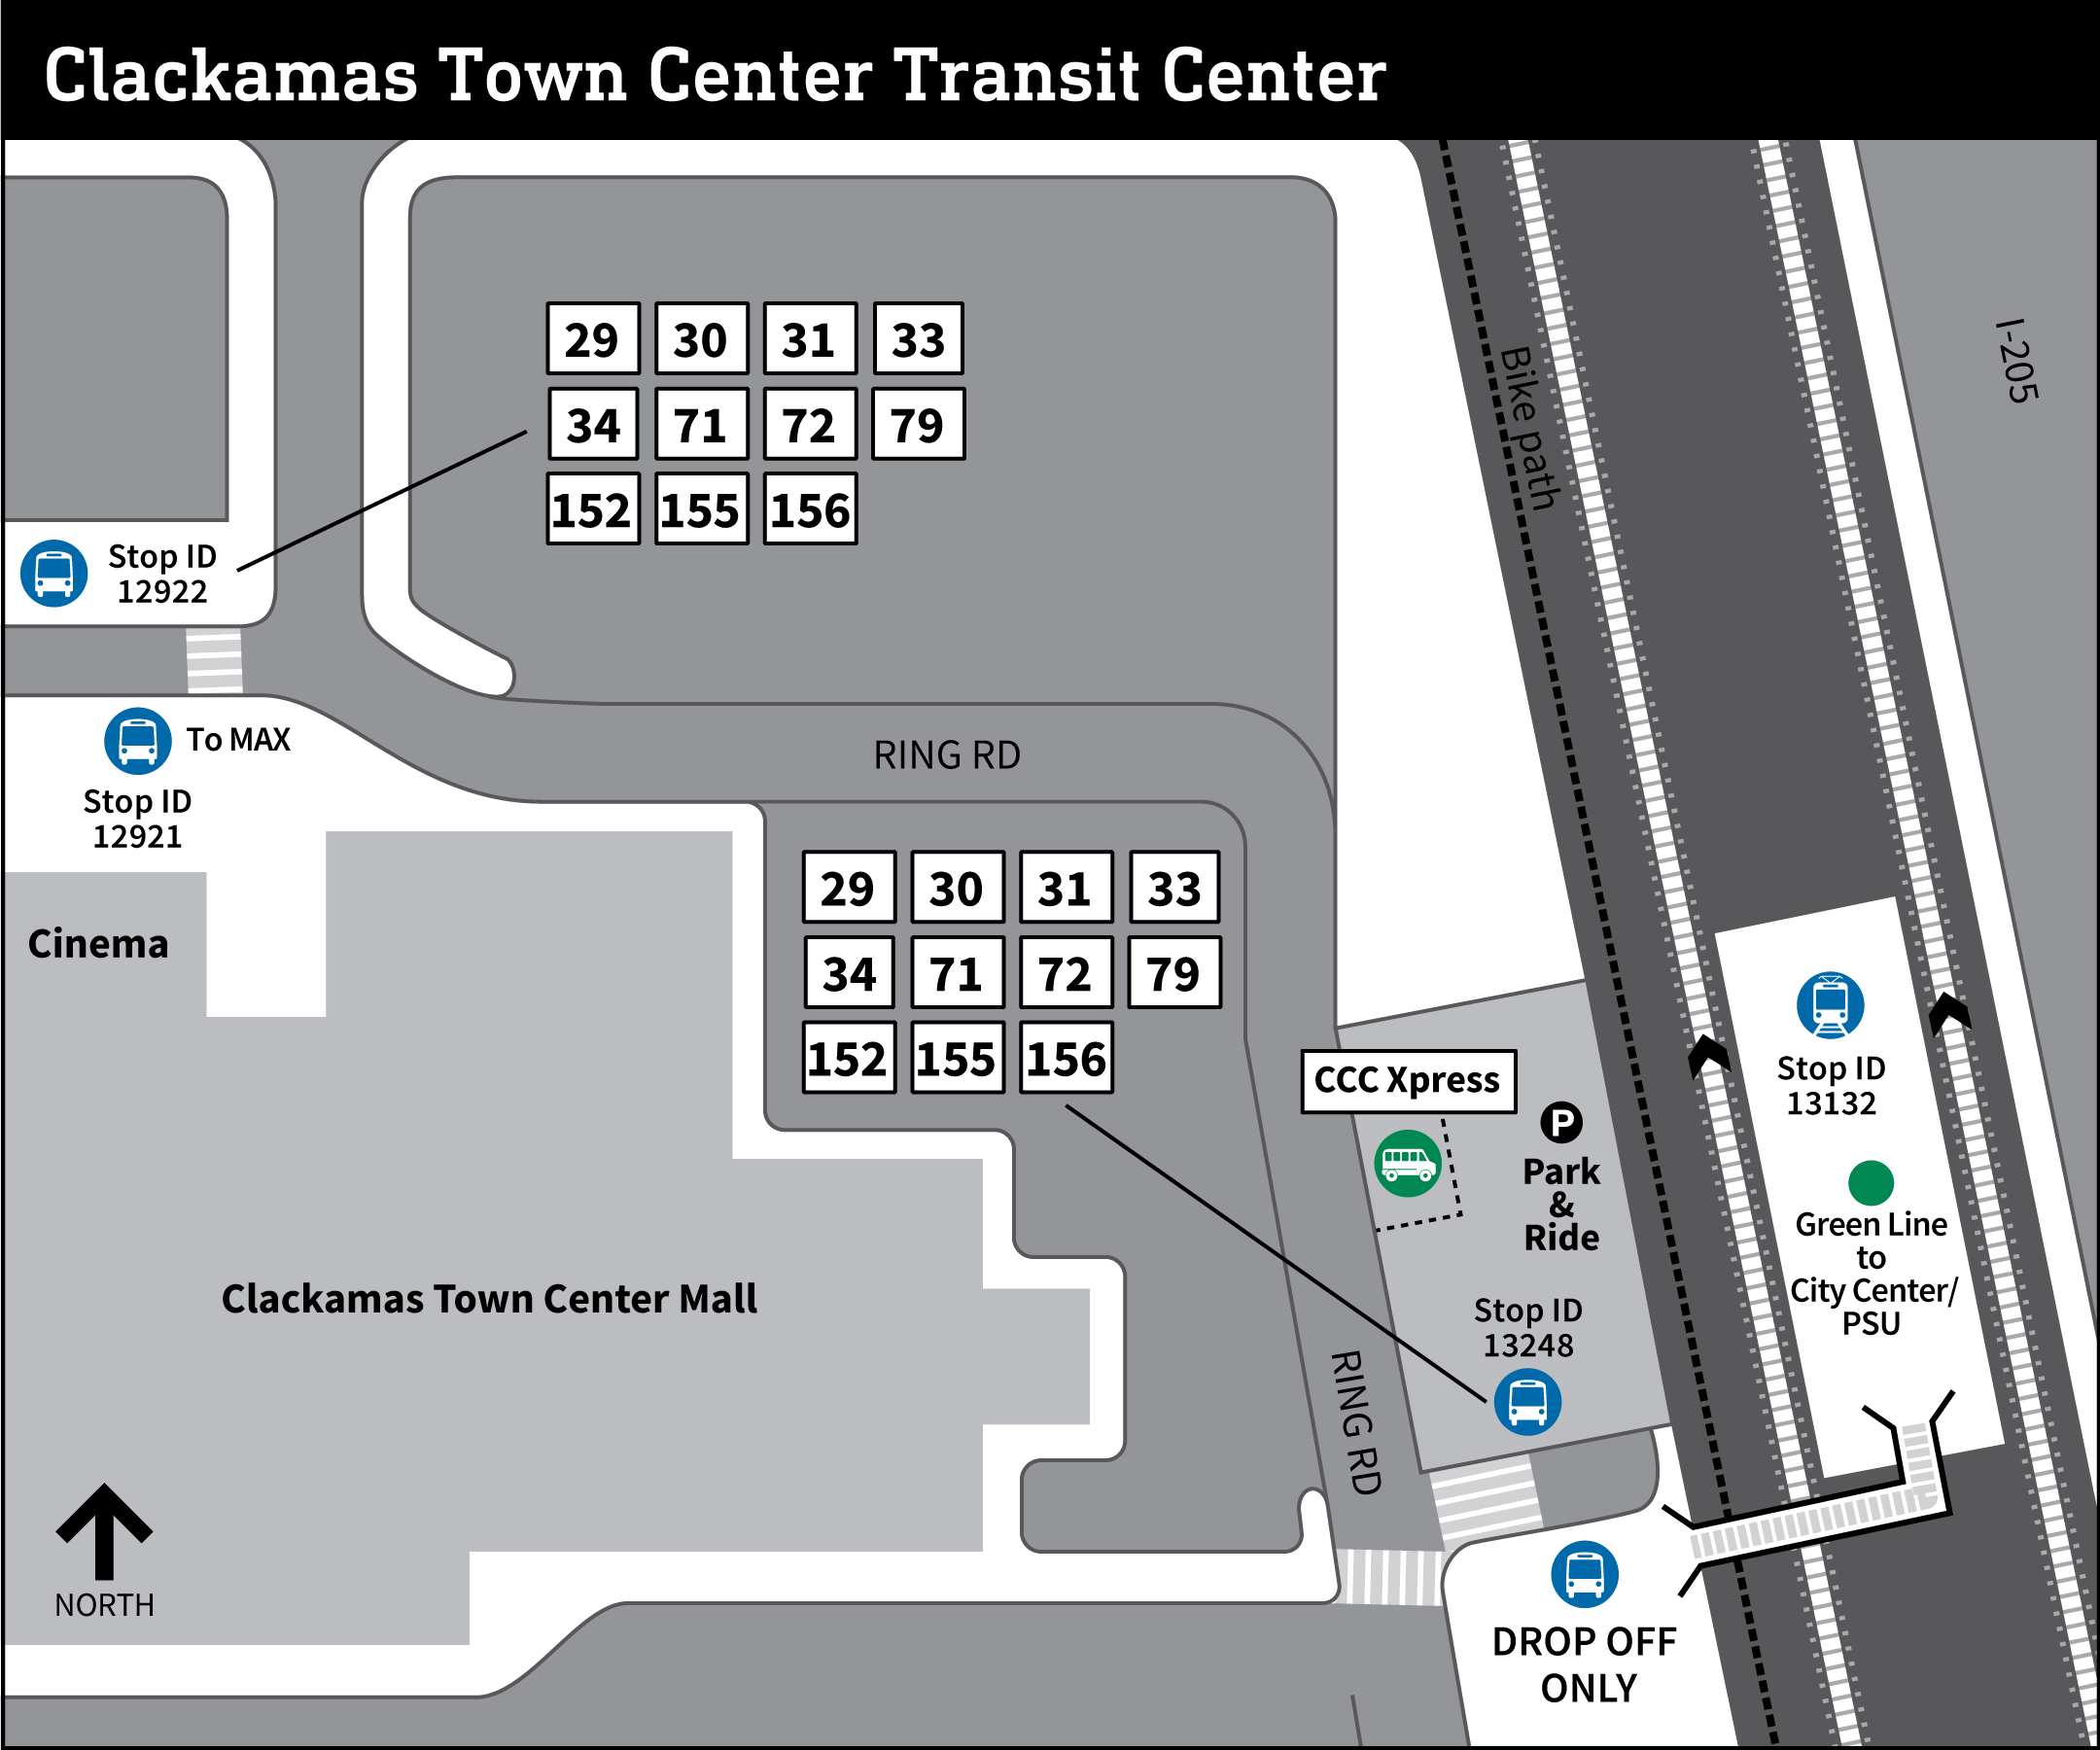 Map of Clackamas Town Center Transit Center